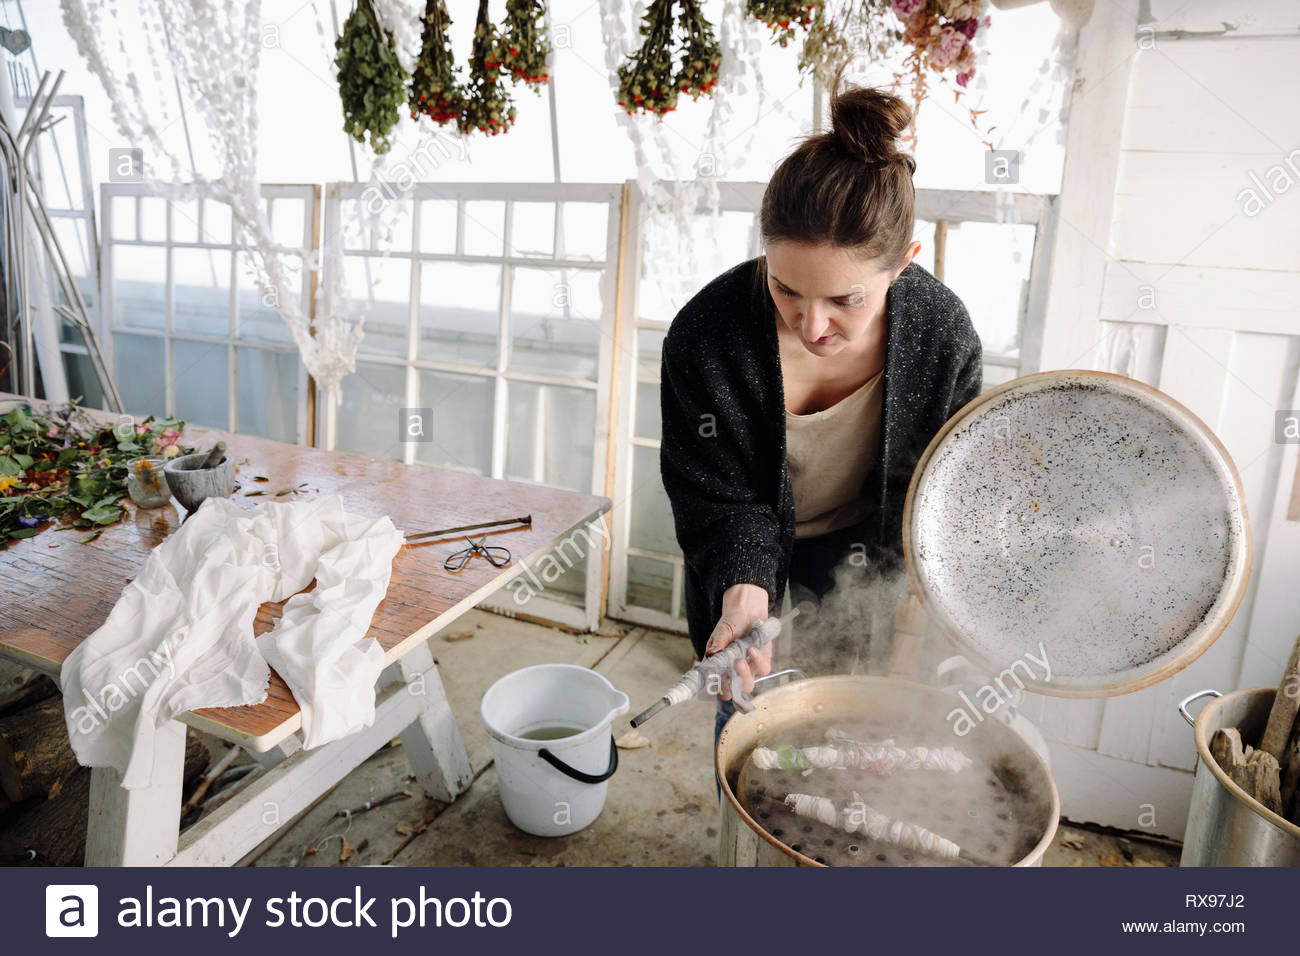 Woman drying flowers for paper making - Stock Image